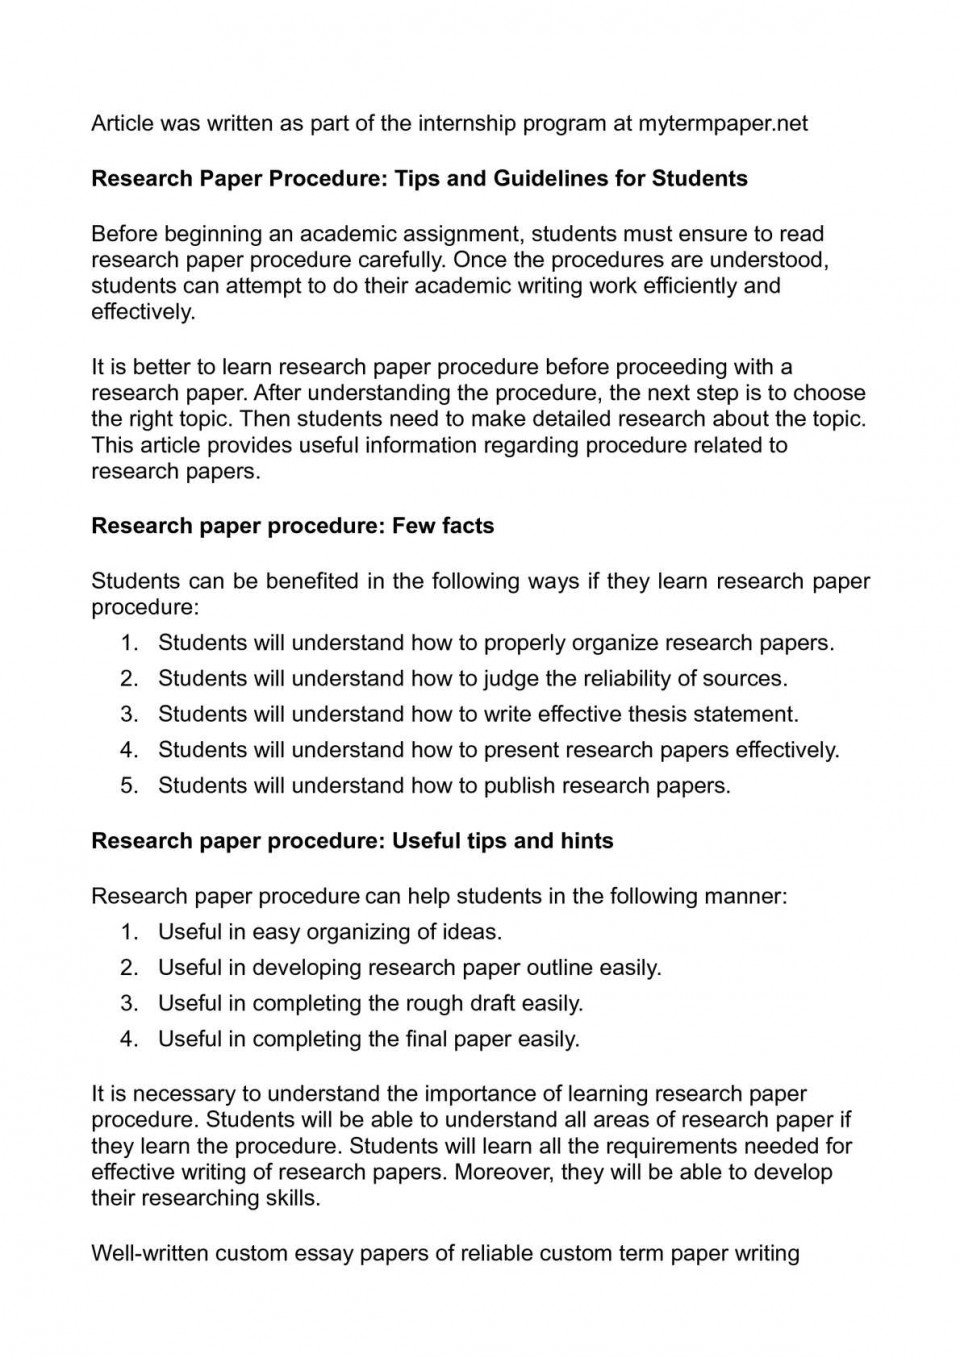 018 How To Do Research Paper Marvelous Write A Good Review Chapter 1 Fast 960